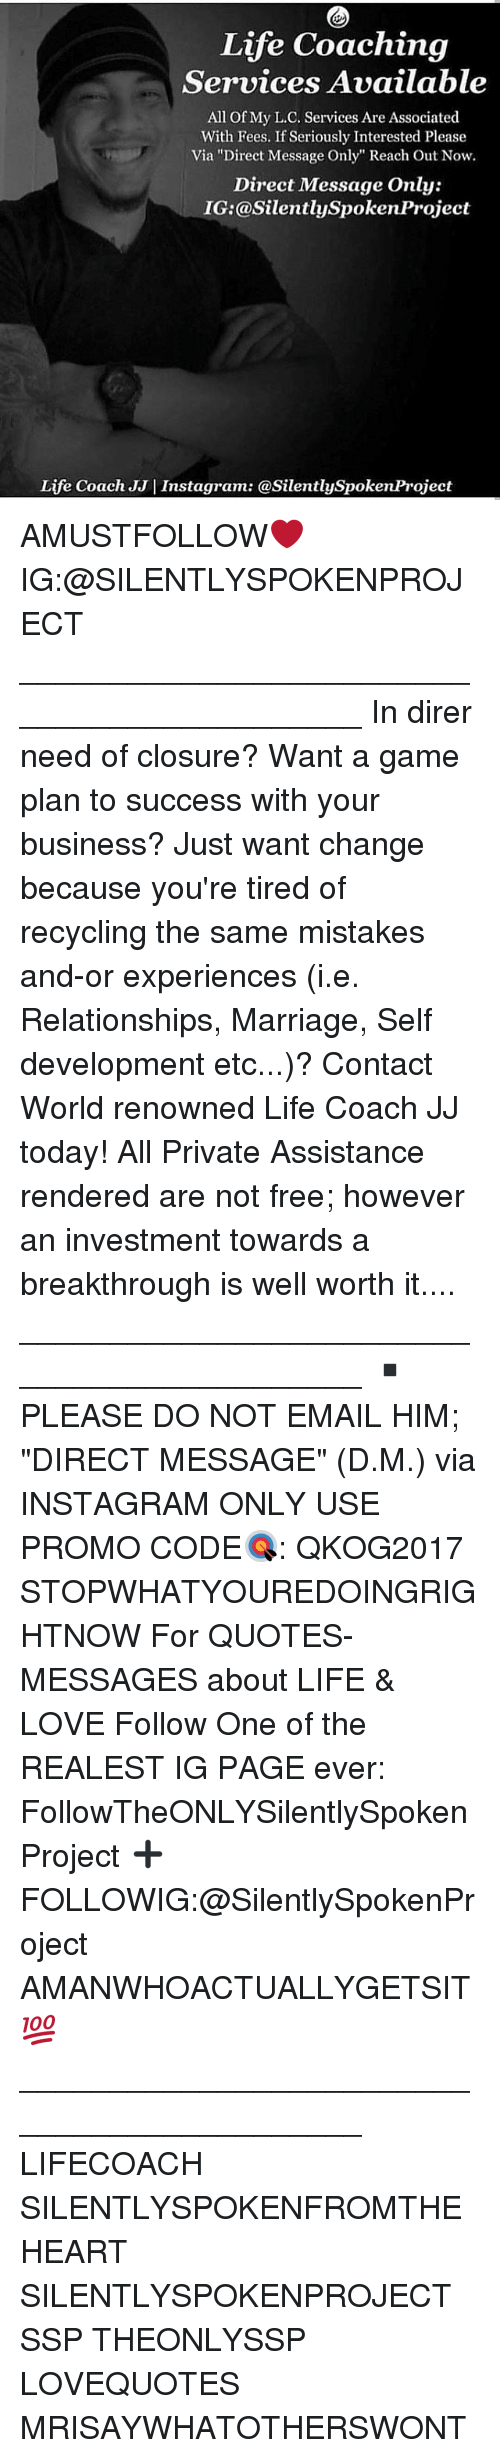 Need Love Quotes For Him Life Coaching Services Available All Of My Lc Services Are